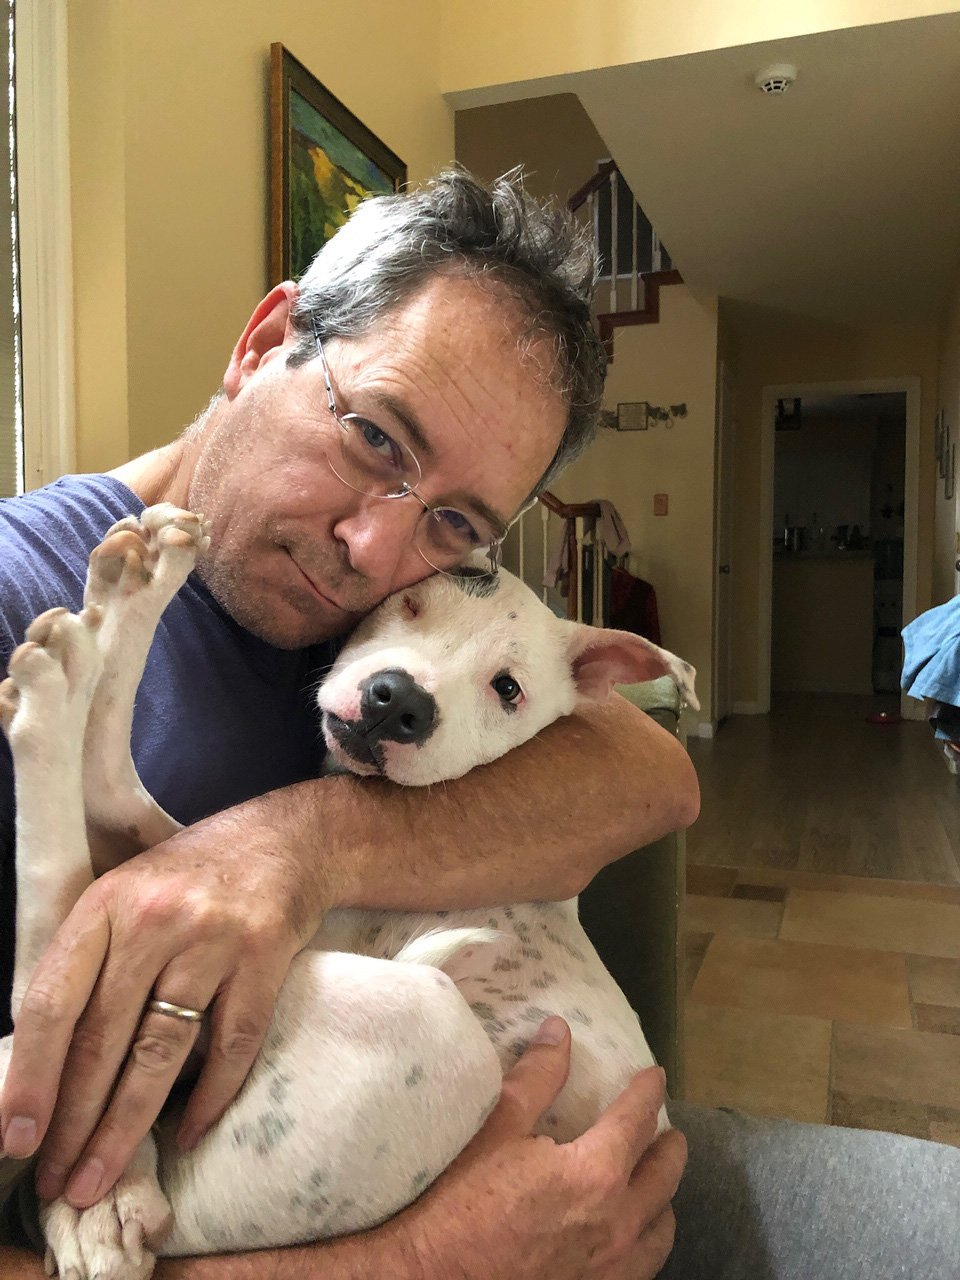 Owners Francisco (pictured) and Kilyn took the puppy in and nursed her to health (Picture: @khbubbles/Hook News)